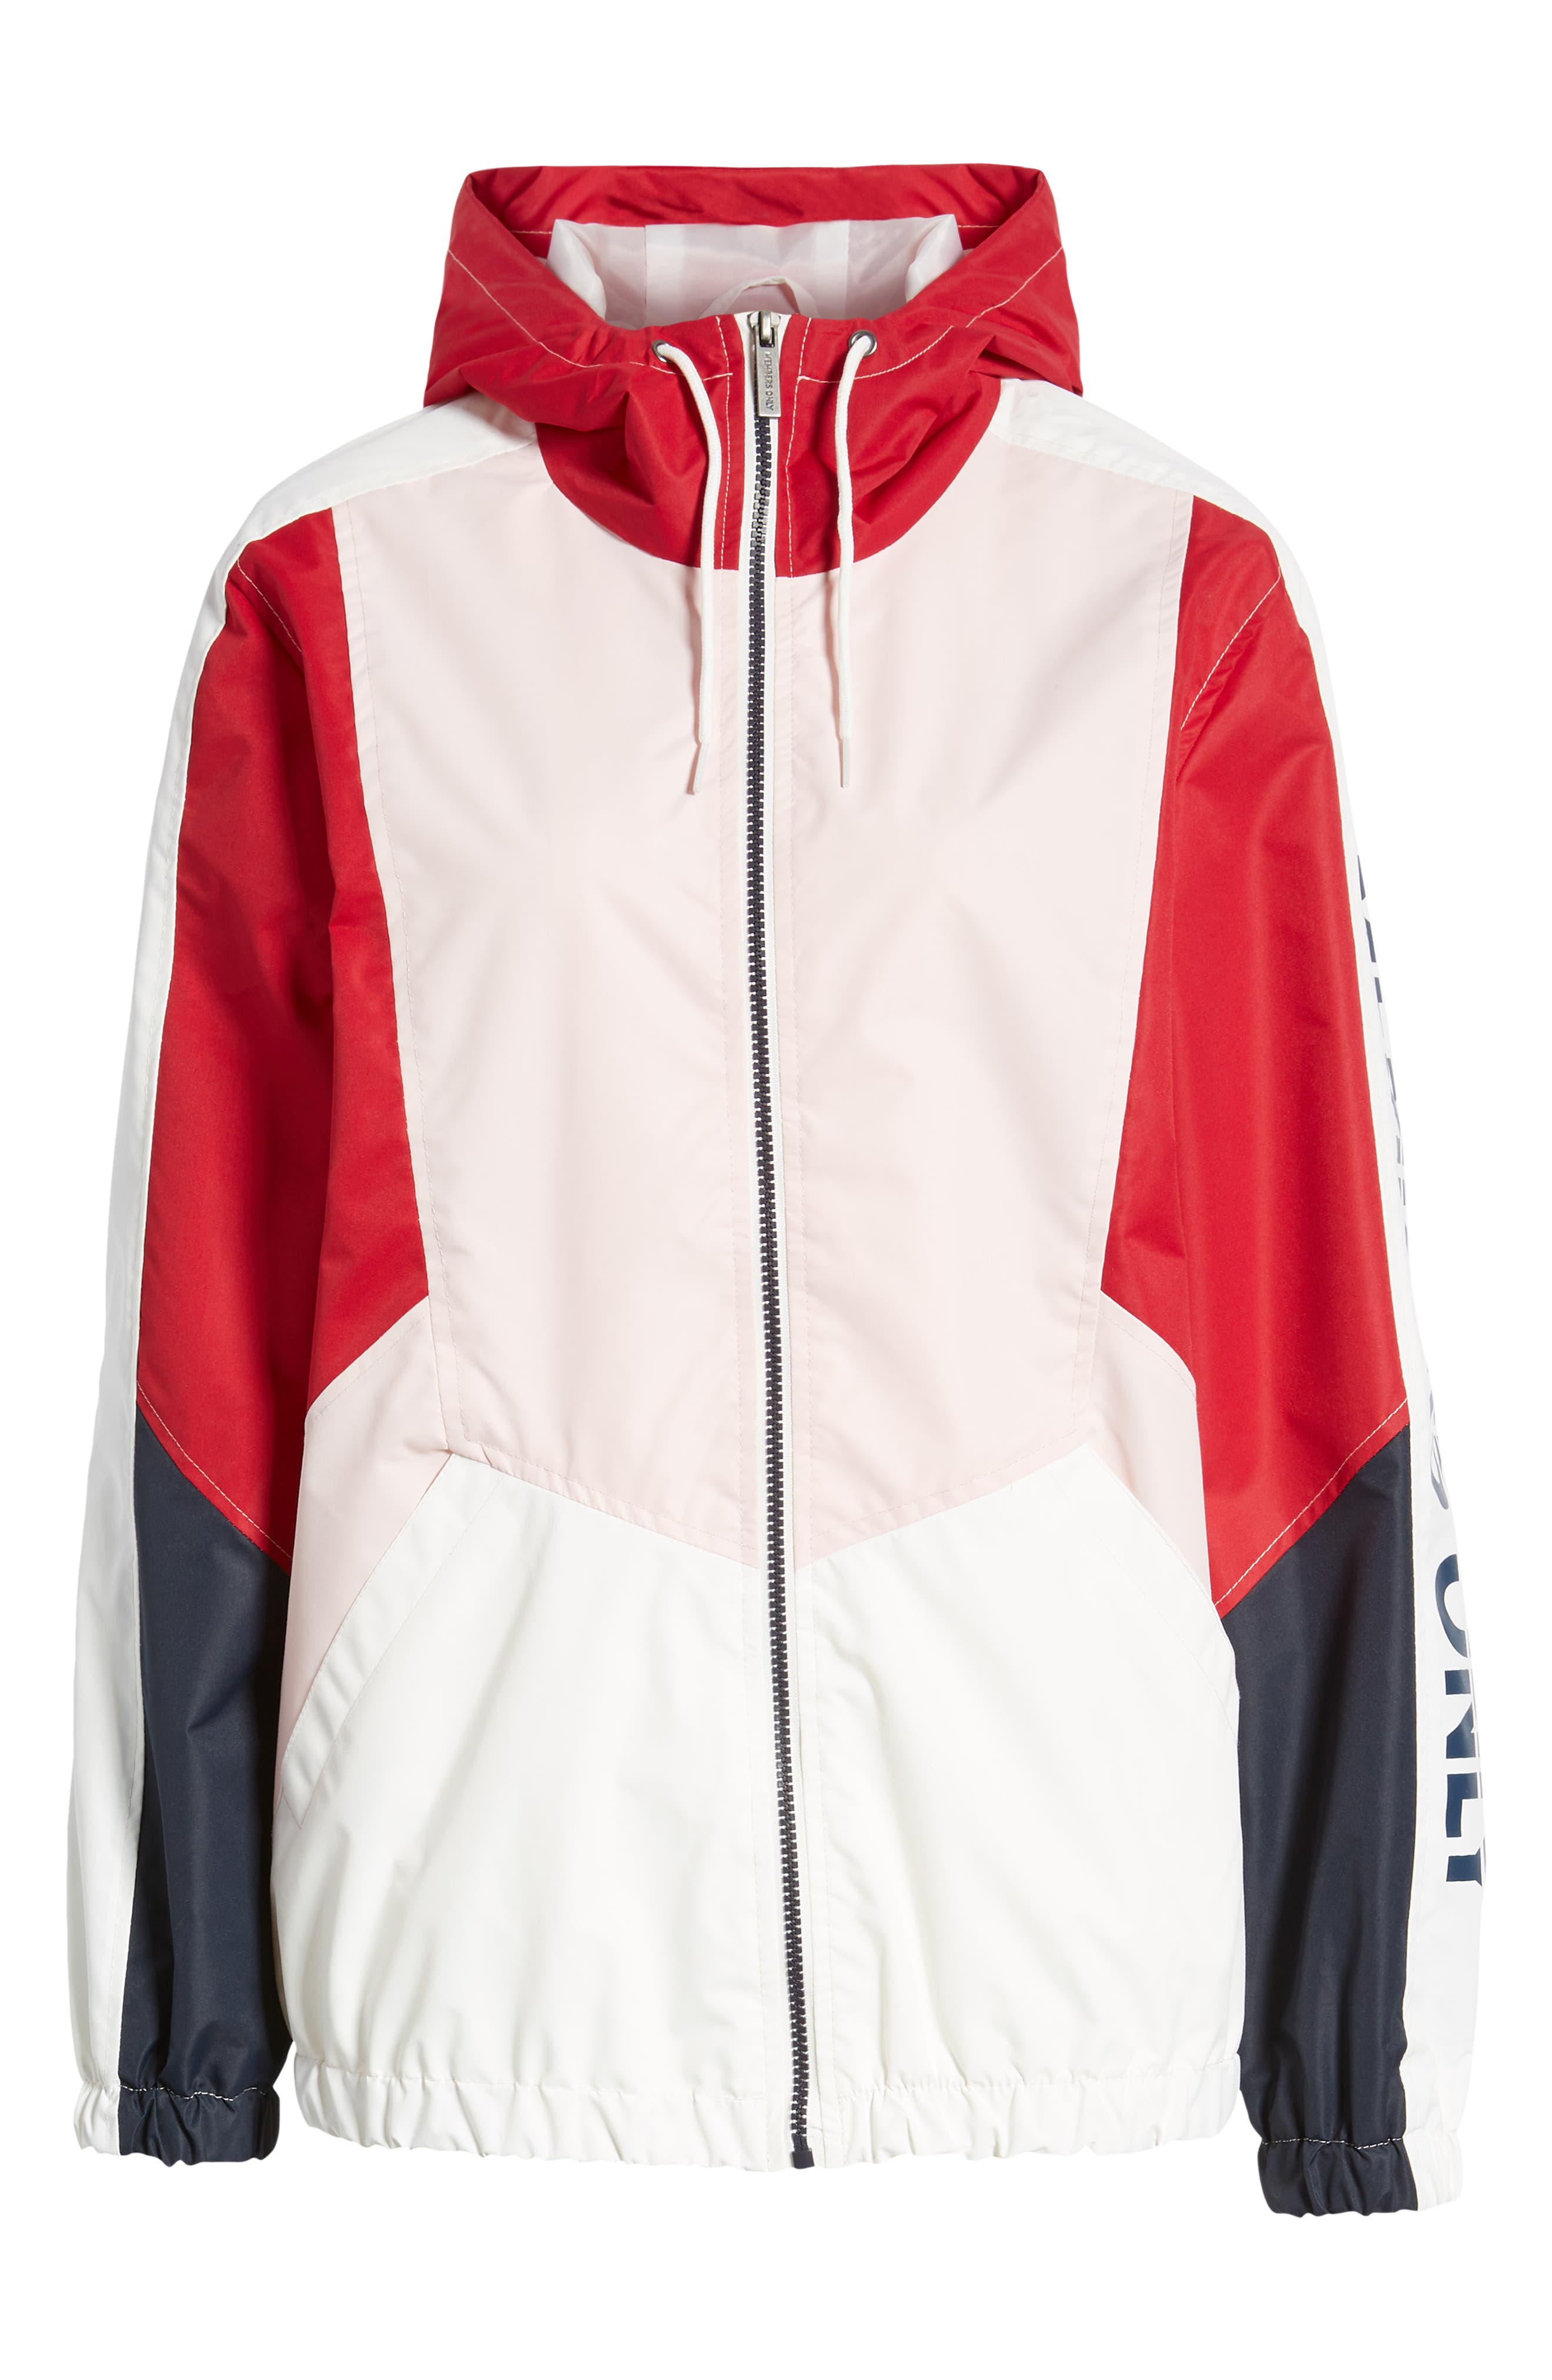 Retro Colorblock Bomber Jacket,                             Alternate thumbnail 6, color,                             PINK-RED